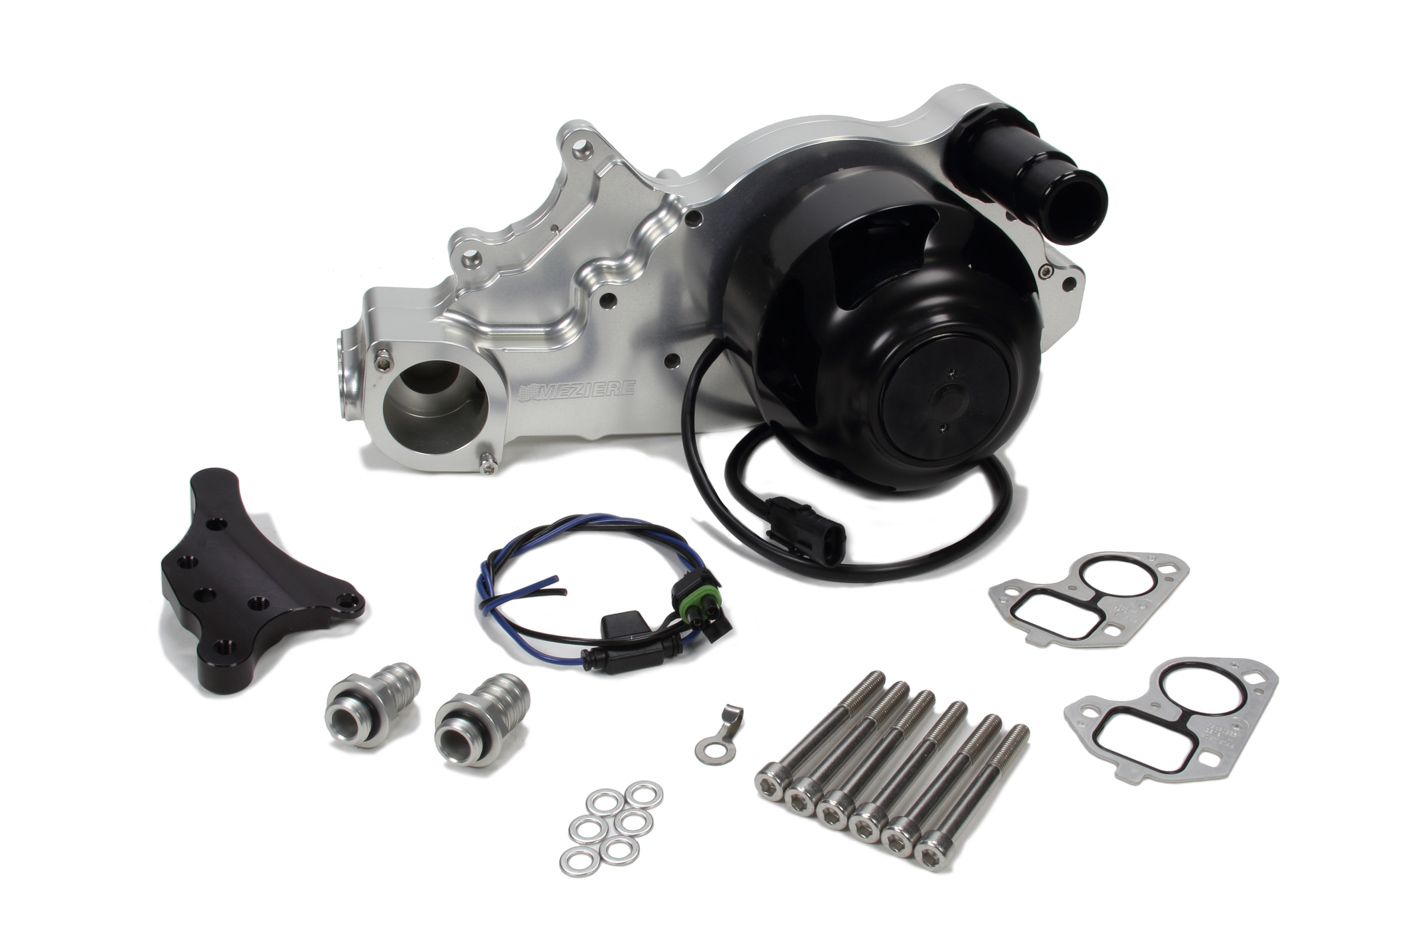 Meziere WP330N Water Pump, Electric, Street Style, 1-1/4 in Hose Barb Outlet, Gaskets / Hardware / Wiring Included, Aluminum, Natural, LS3, GM LS-Series, Chevy Corvette 2010-13, Kit